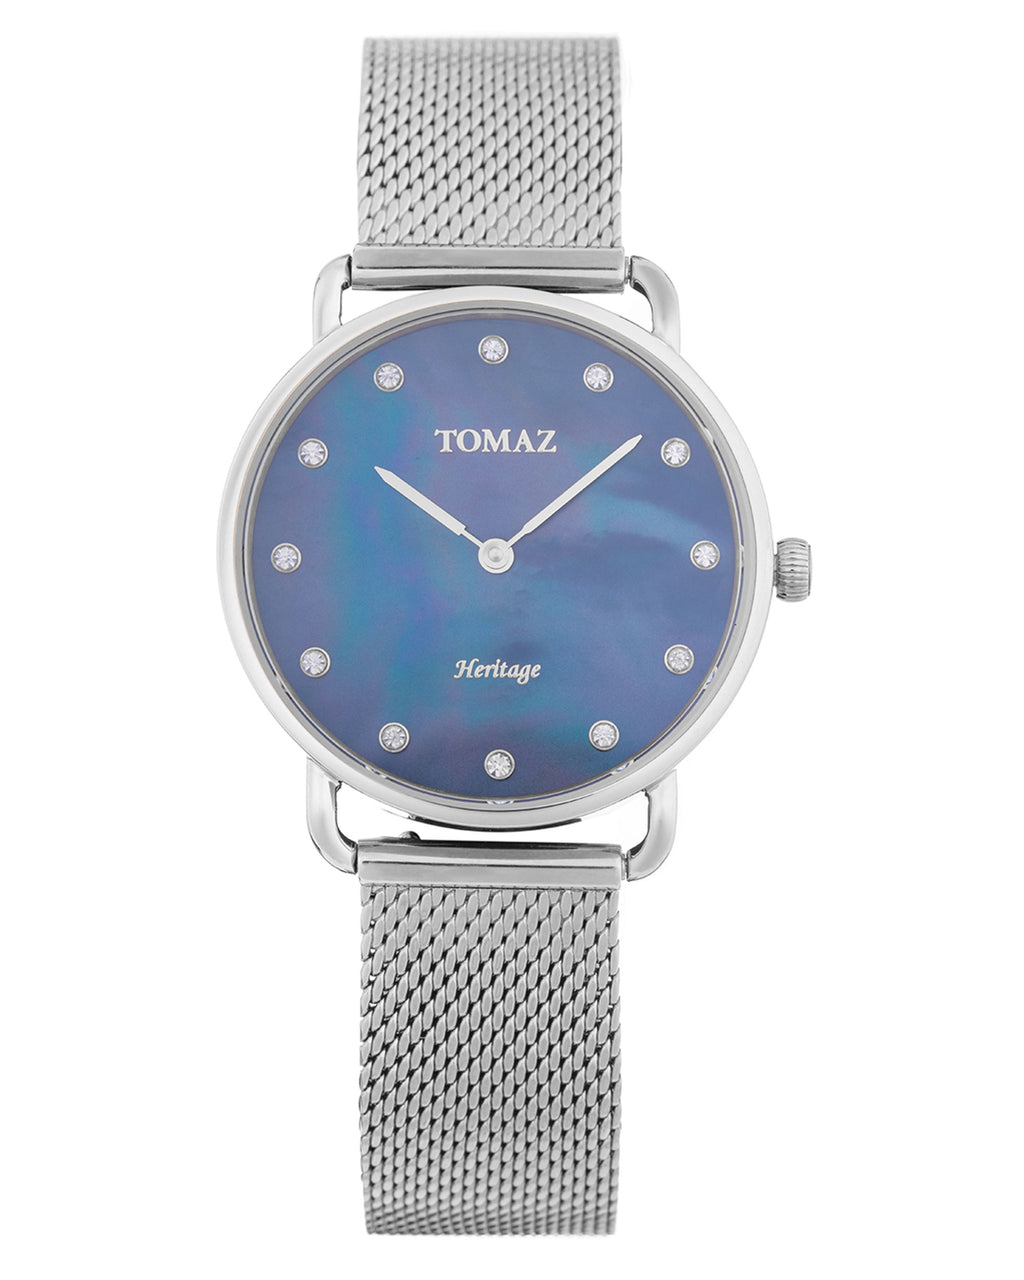 Tomaz Ladies Watch G1L-D11 (Silver/Dark Blue Marble)